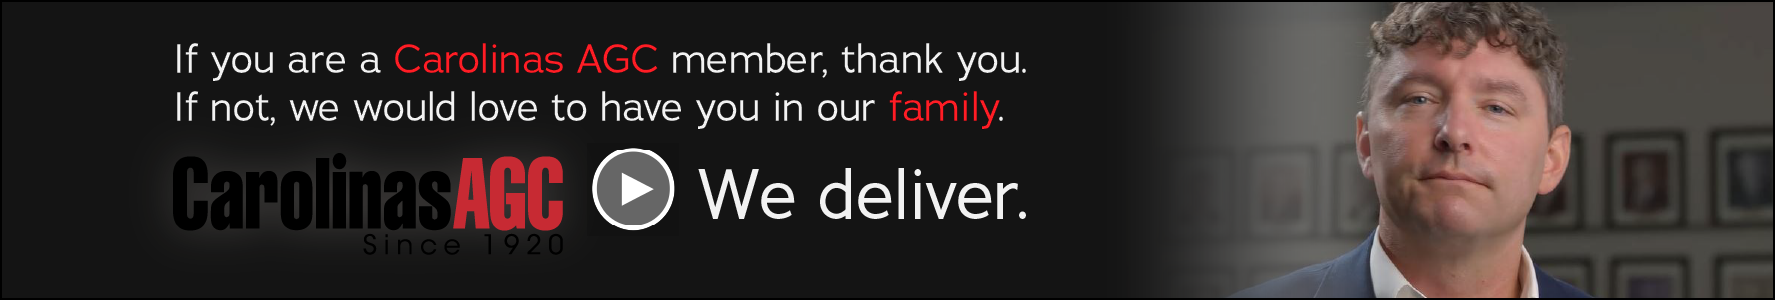 If you are a CAGC Member, thank you. If not, we would love to have you in our family